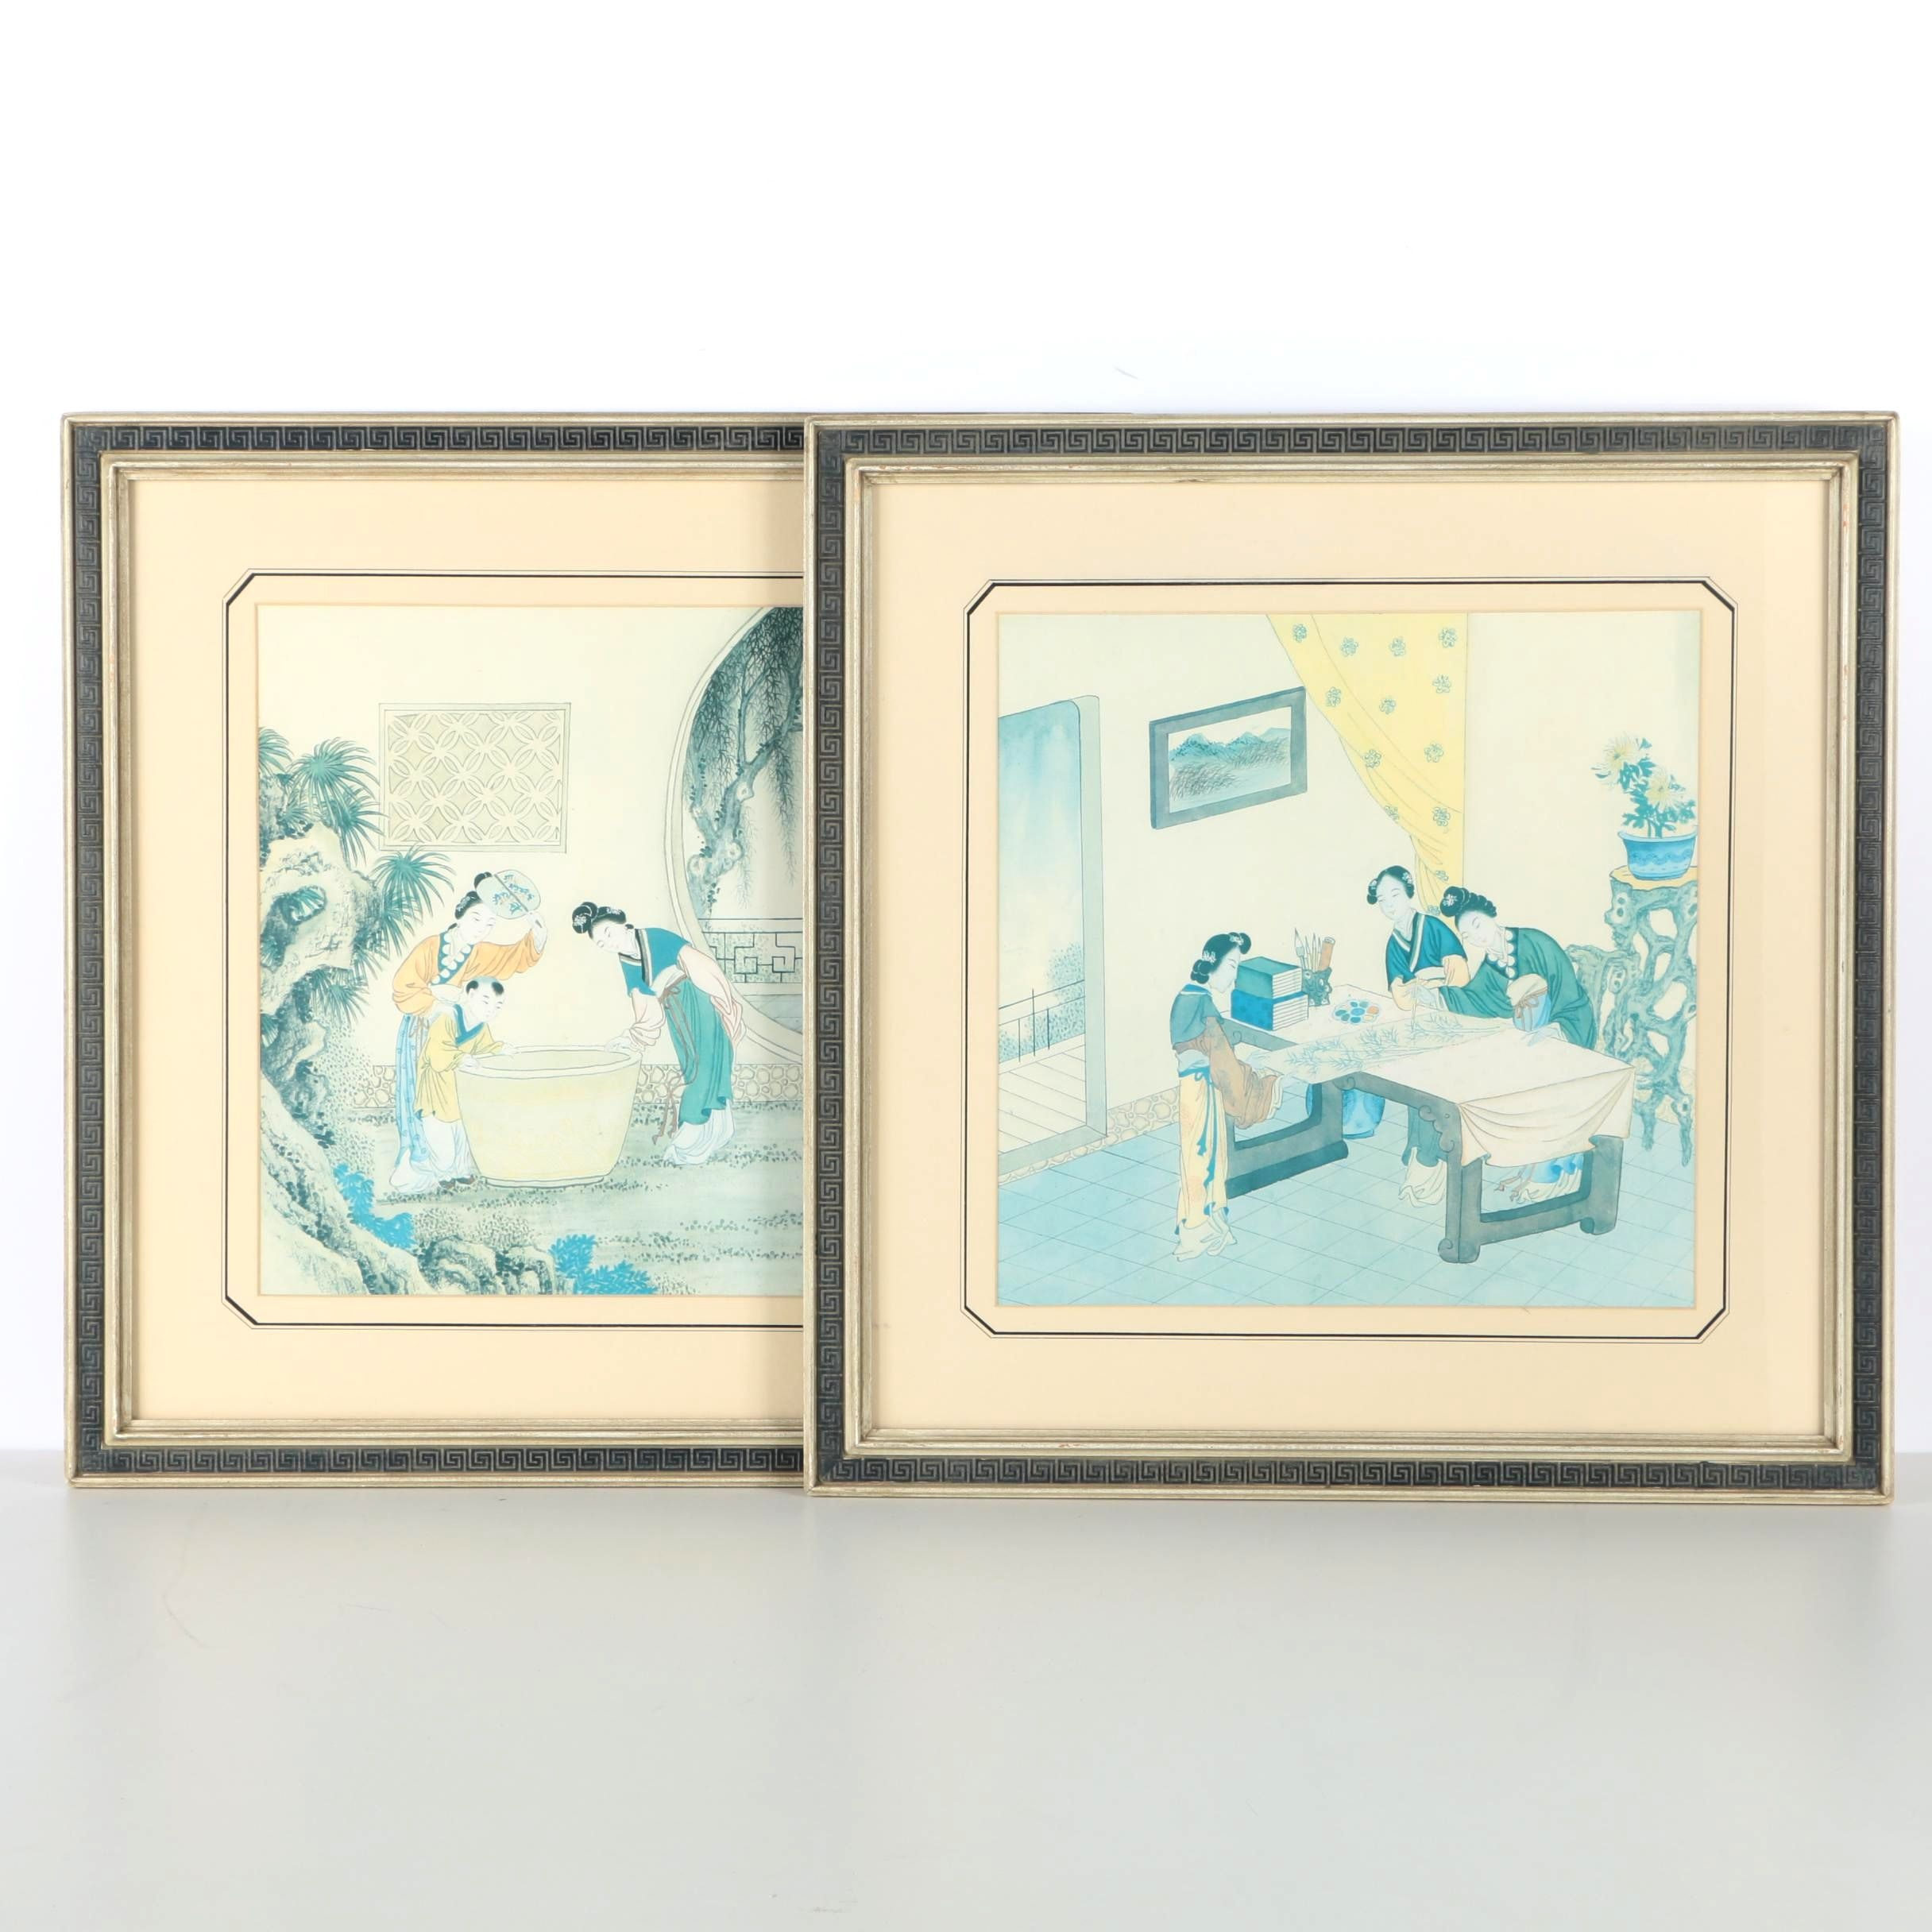 Two Offset Lithograph Prints after Chinese Scrolls